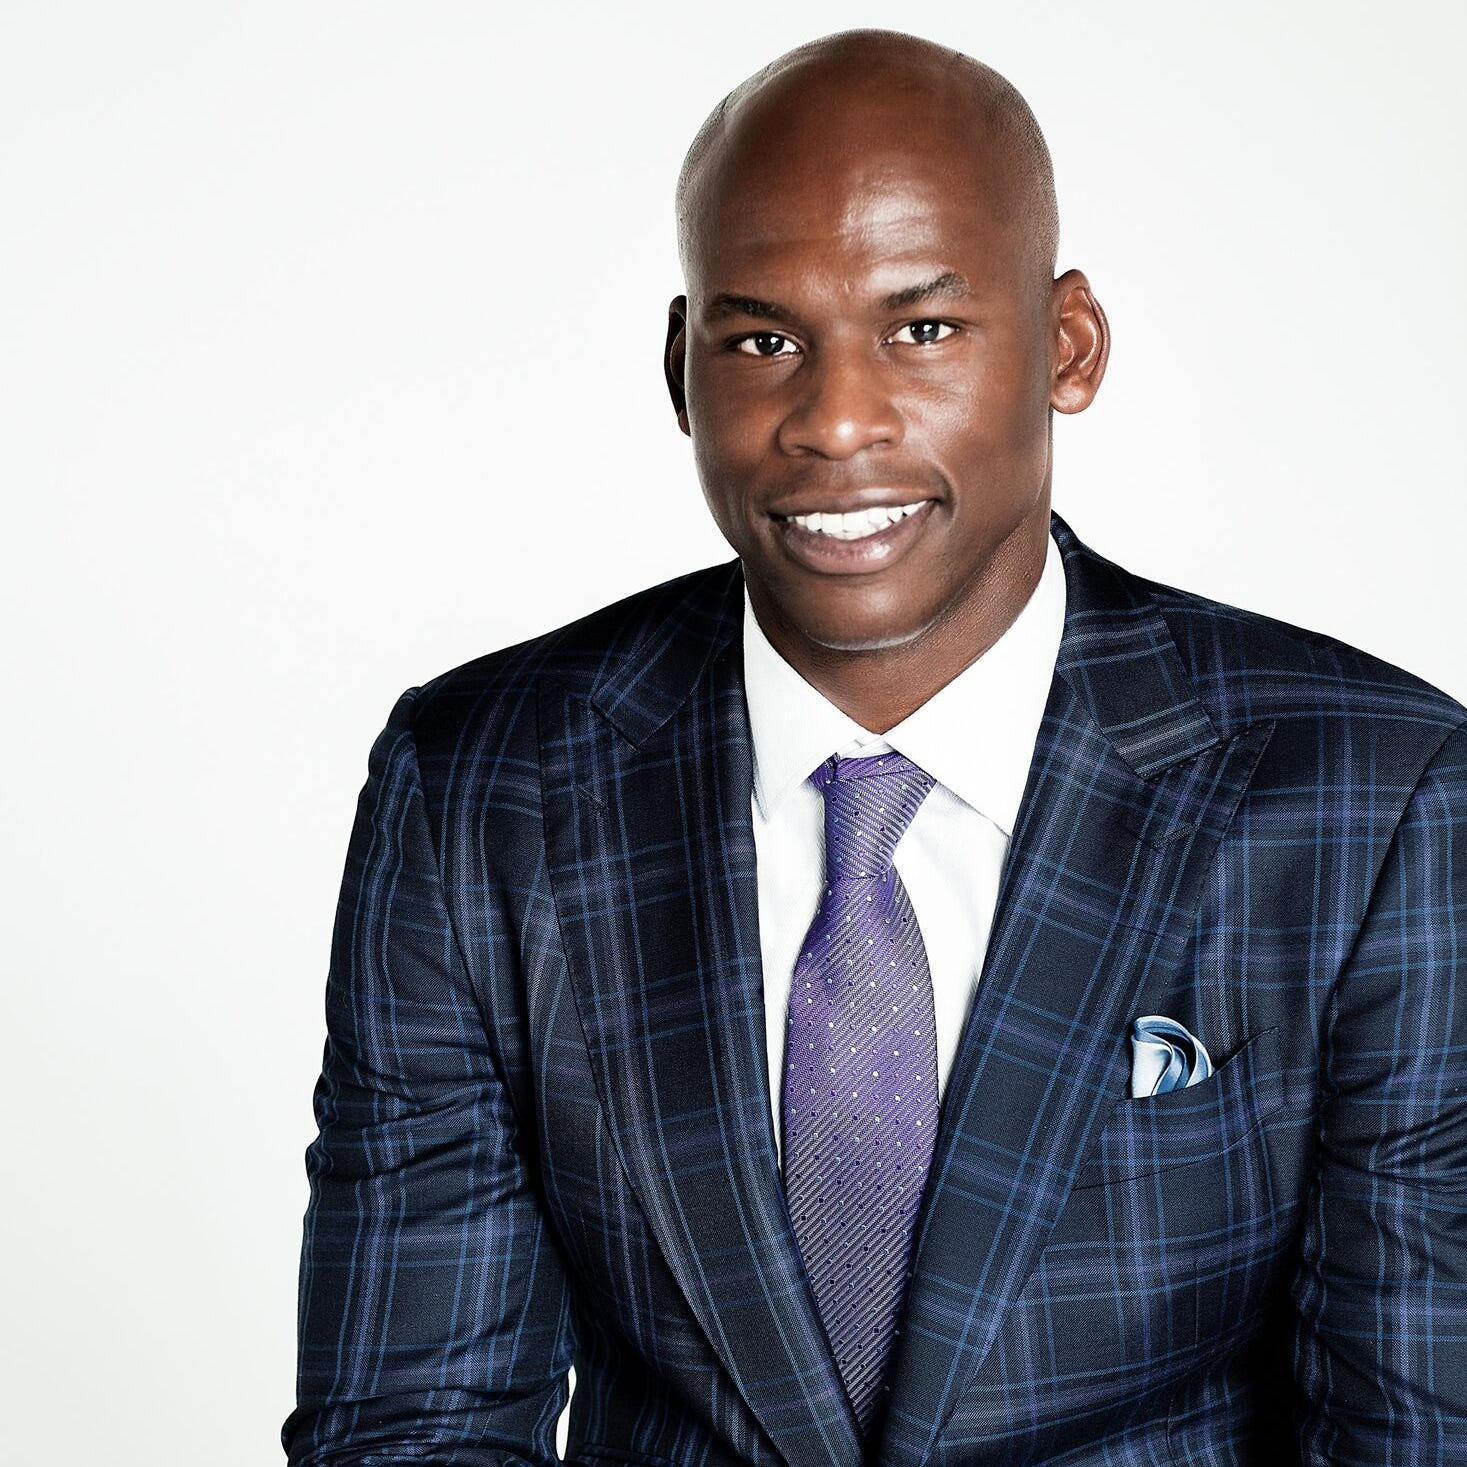 Doyel: Former Pacers forward Al Harrington's second career: marijuana tycoon